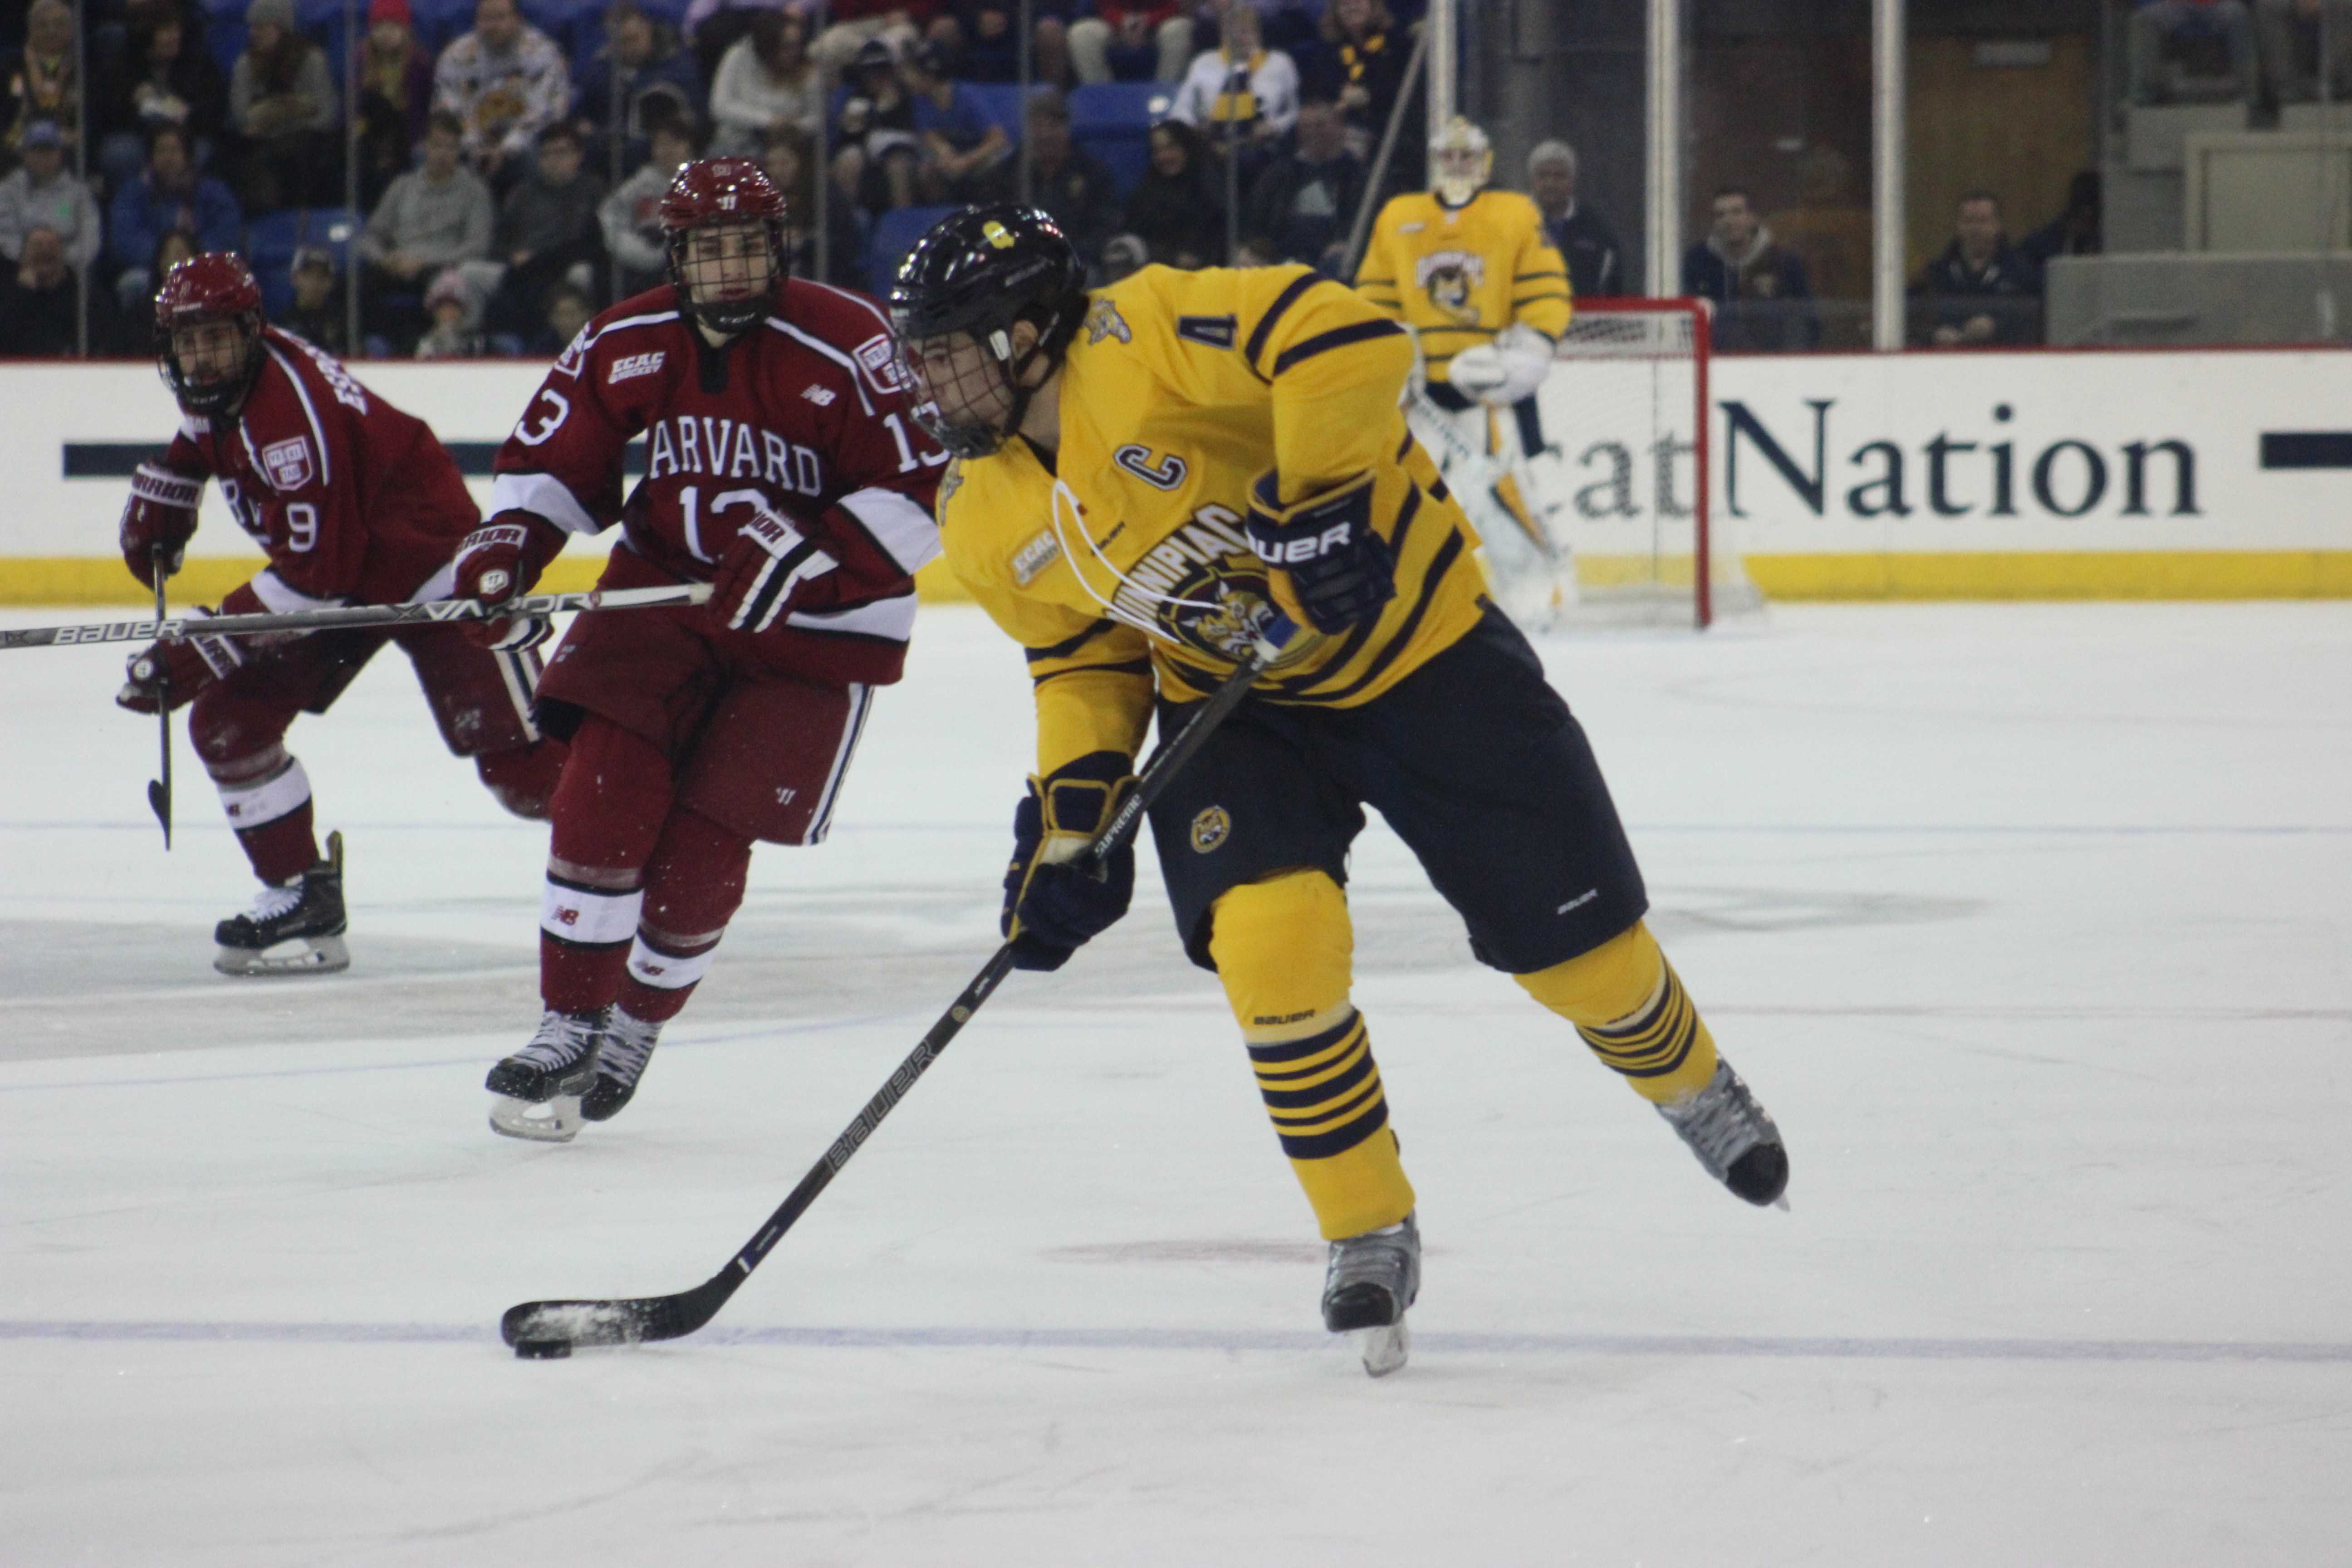 Harvard ends Quinnipiac men's ice hockey season in Lake Placid